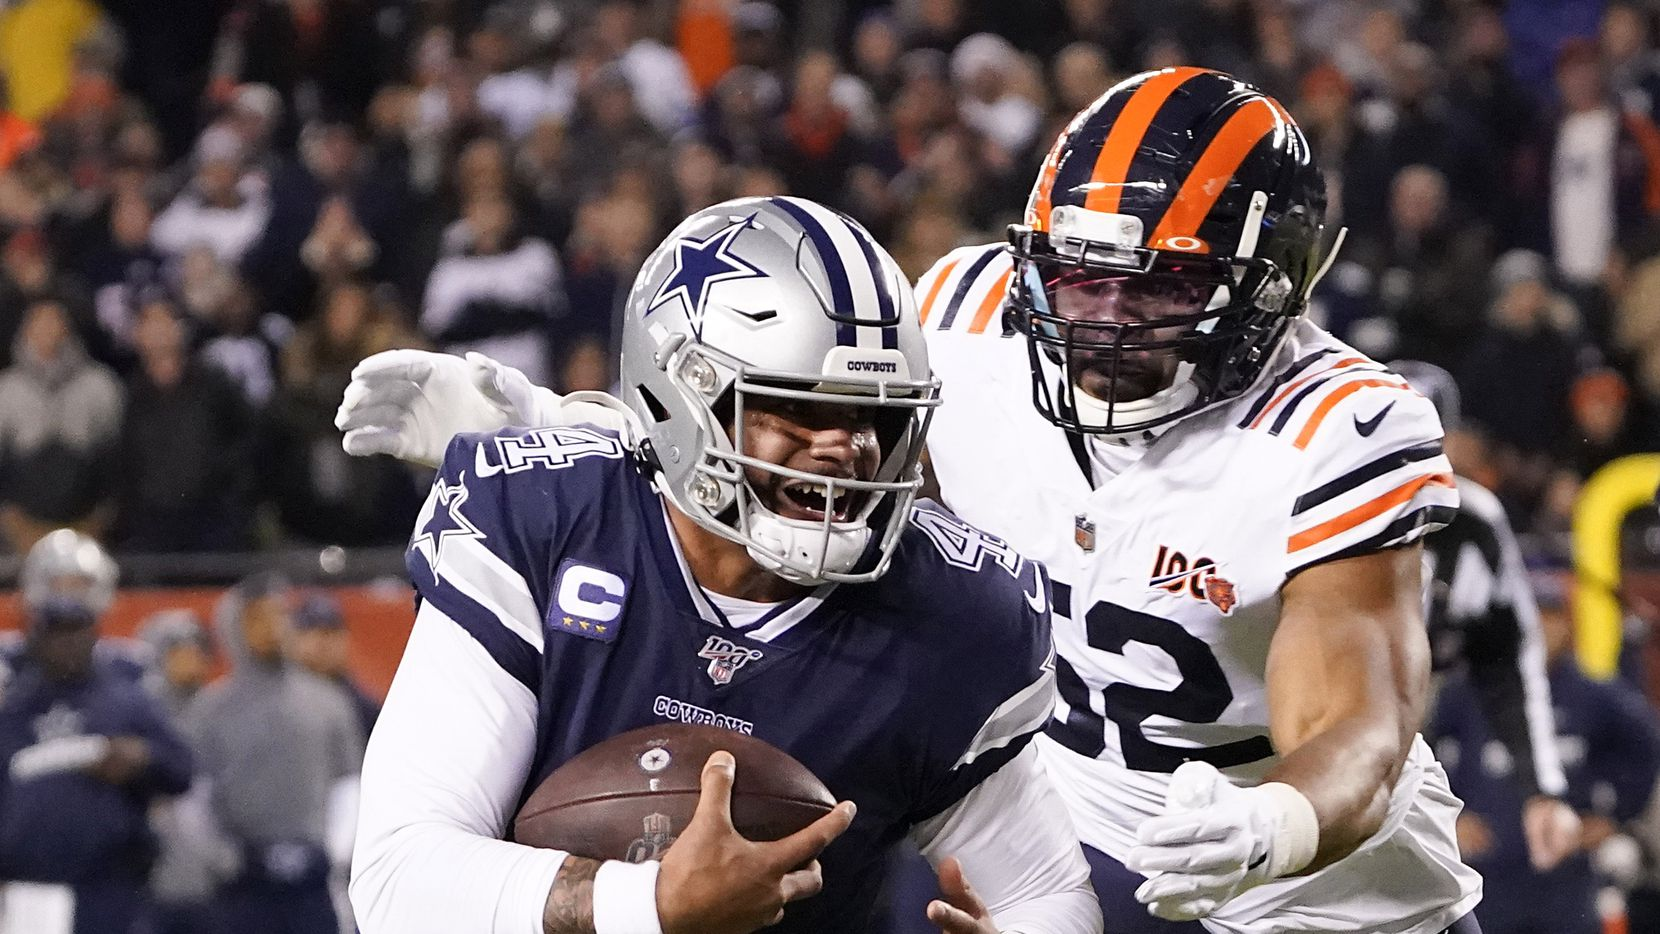 Dallas Cowboys quarterback Dak Prescott (4) is chased down by Chicago Bears outside linebacker Khalil Mack (52) during the first quarter of an NFL football game at Soldier Field on Thursday, Dec. 5, 2019, in Chicago.